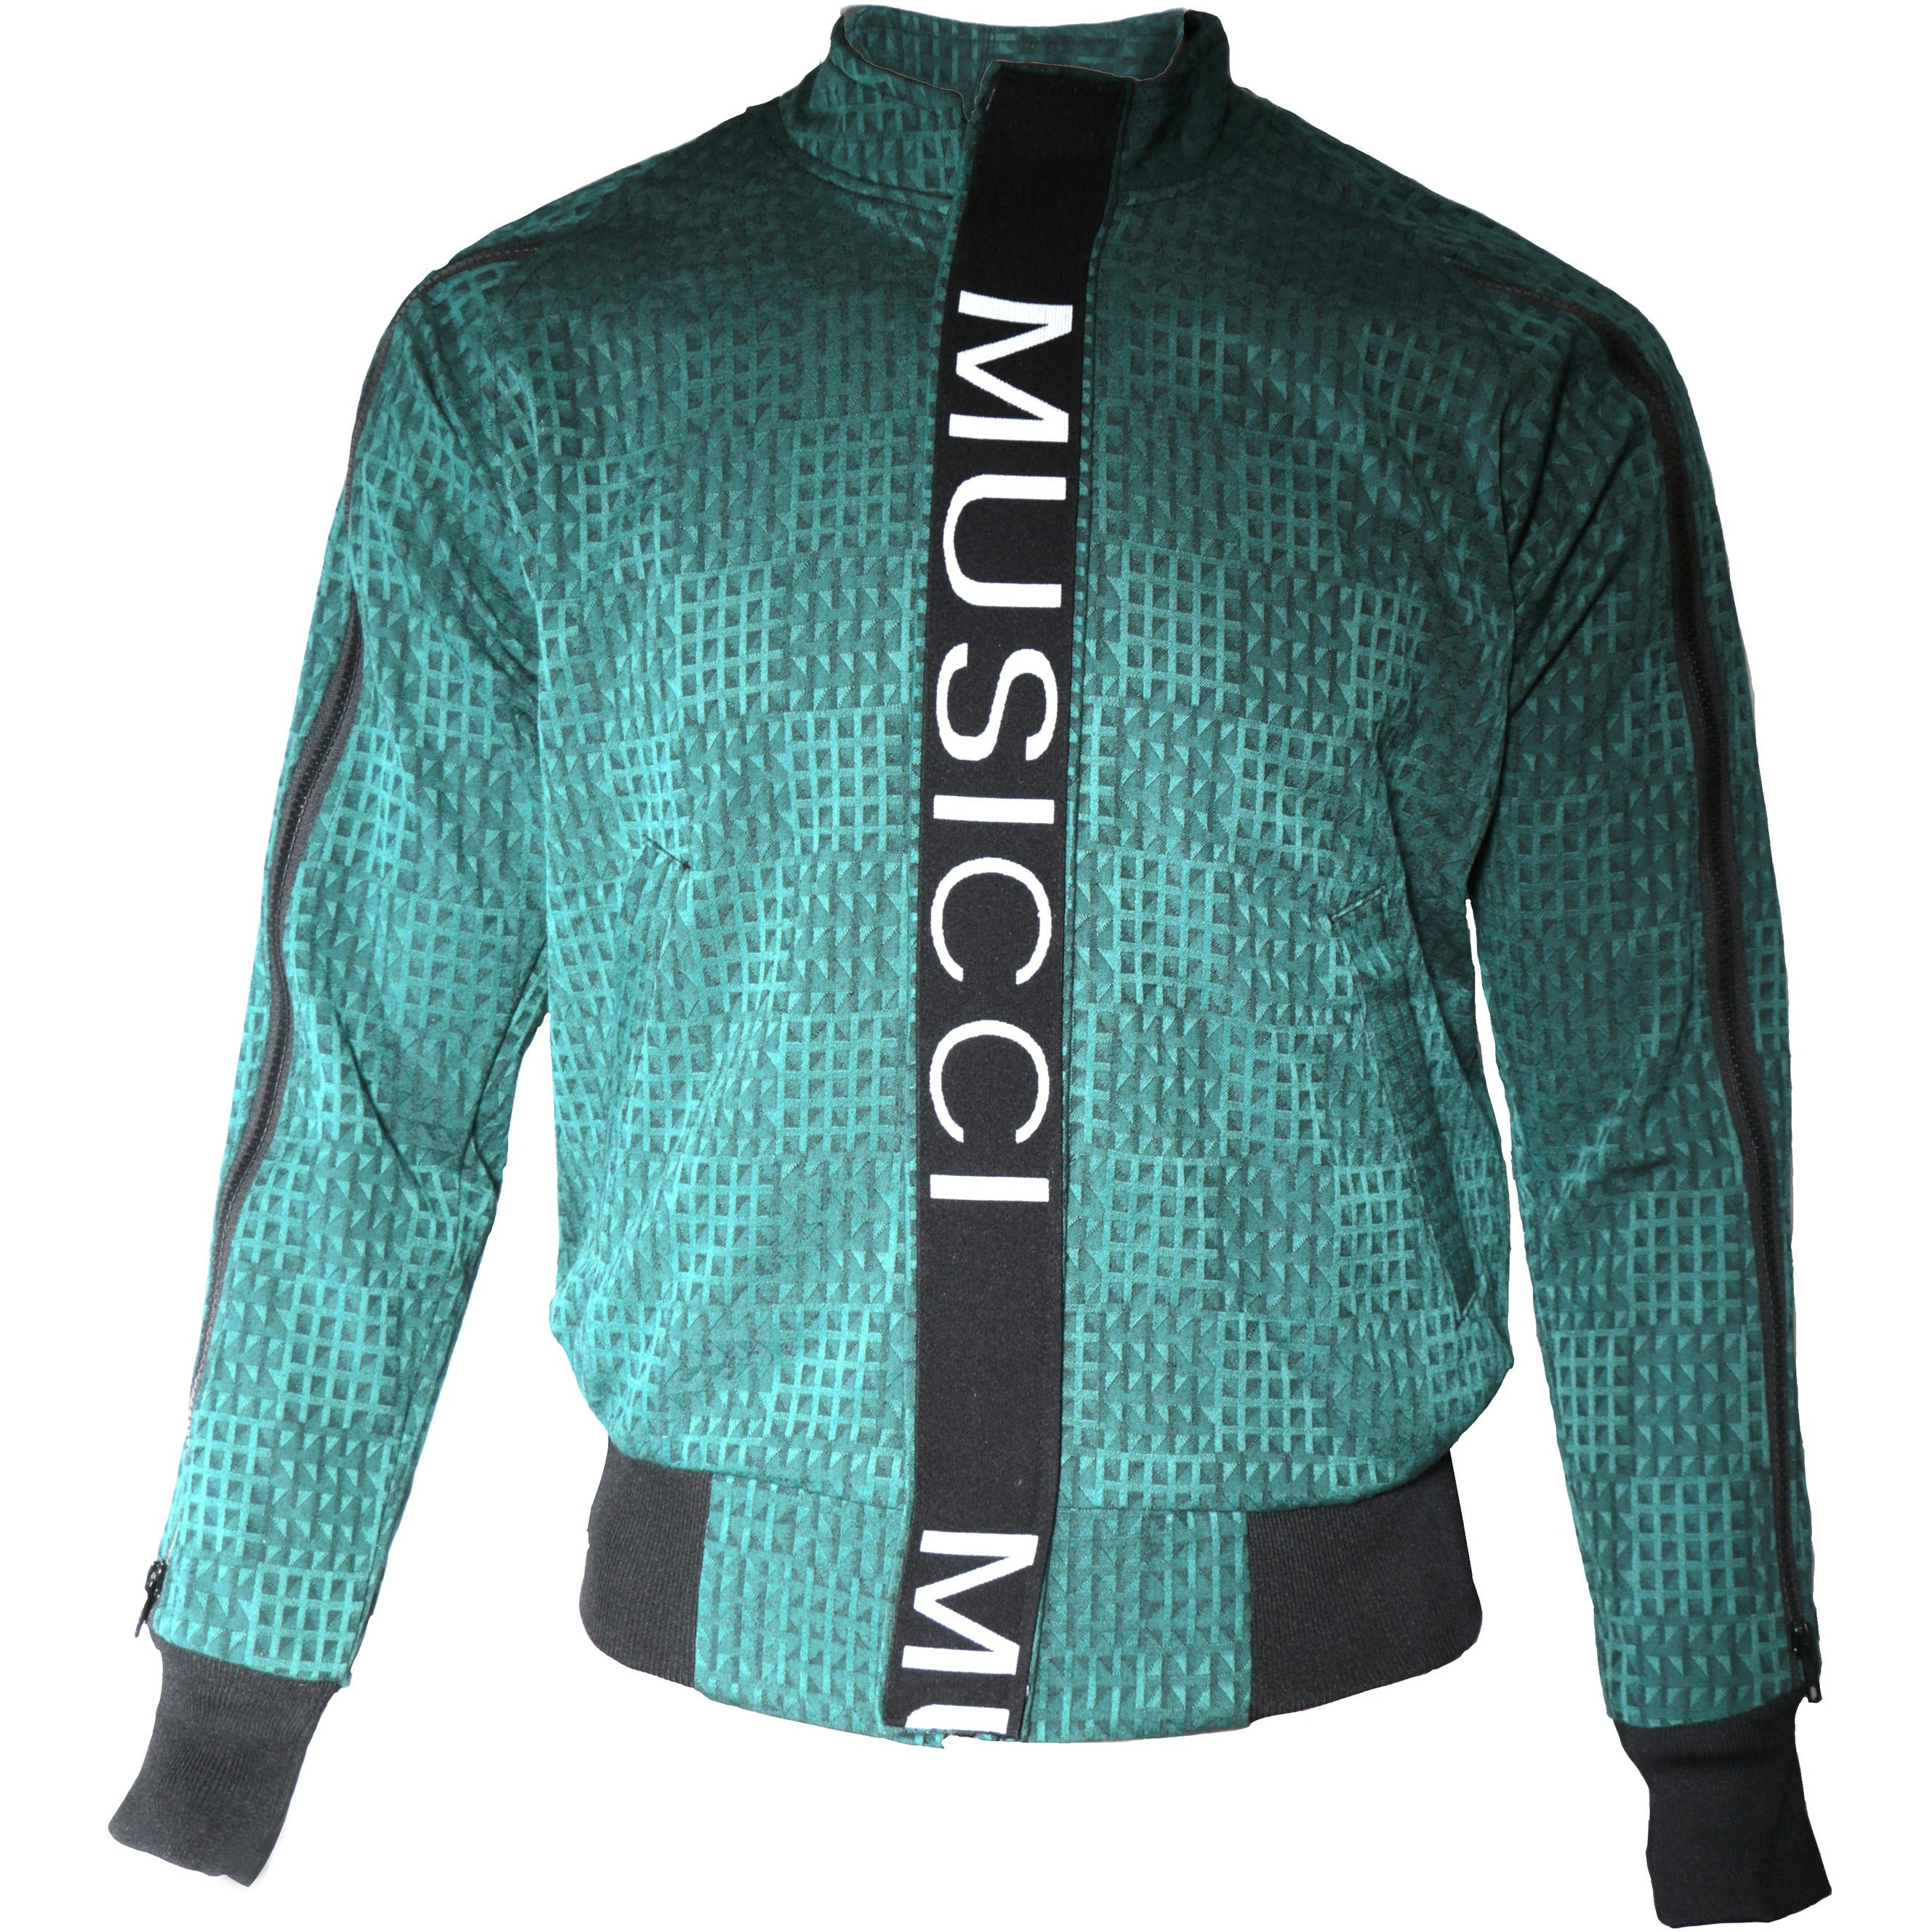 Green modern zipper jacket